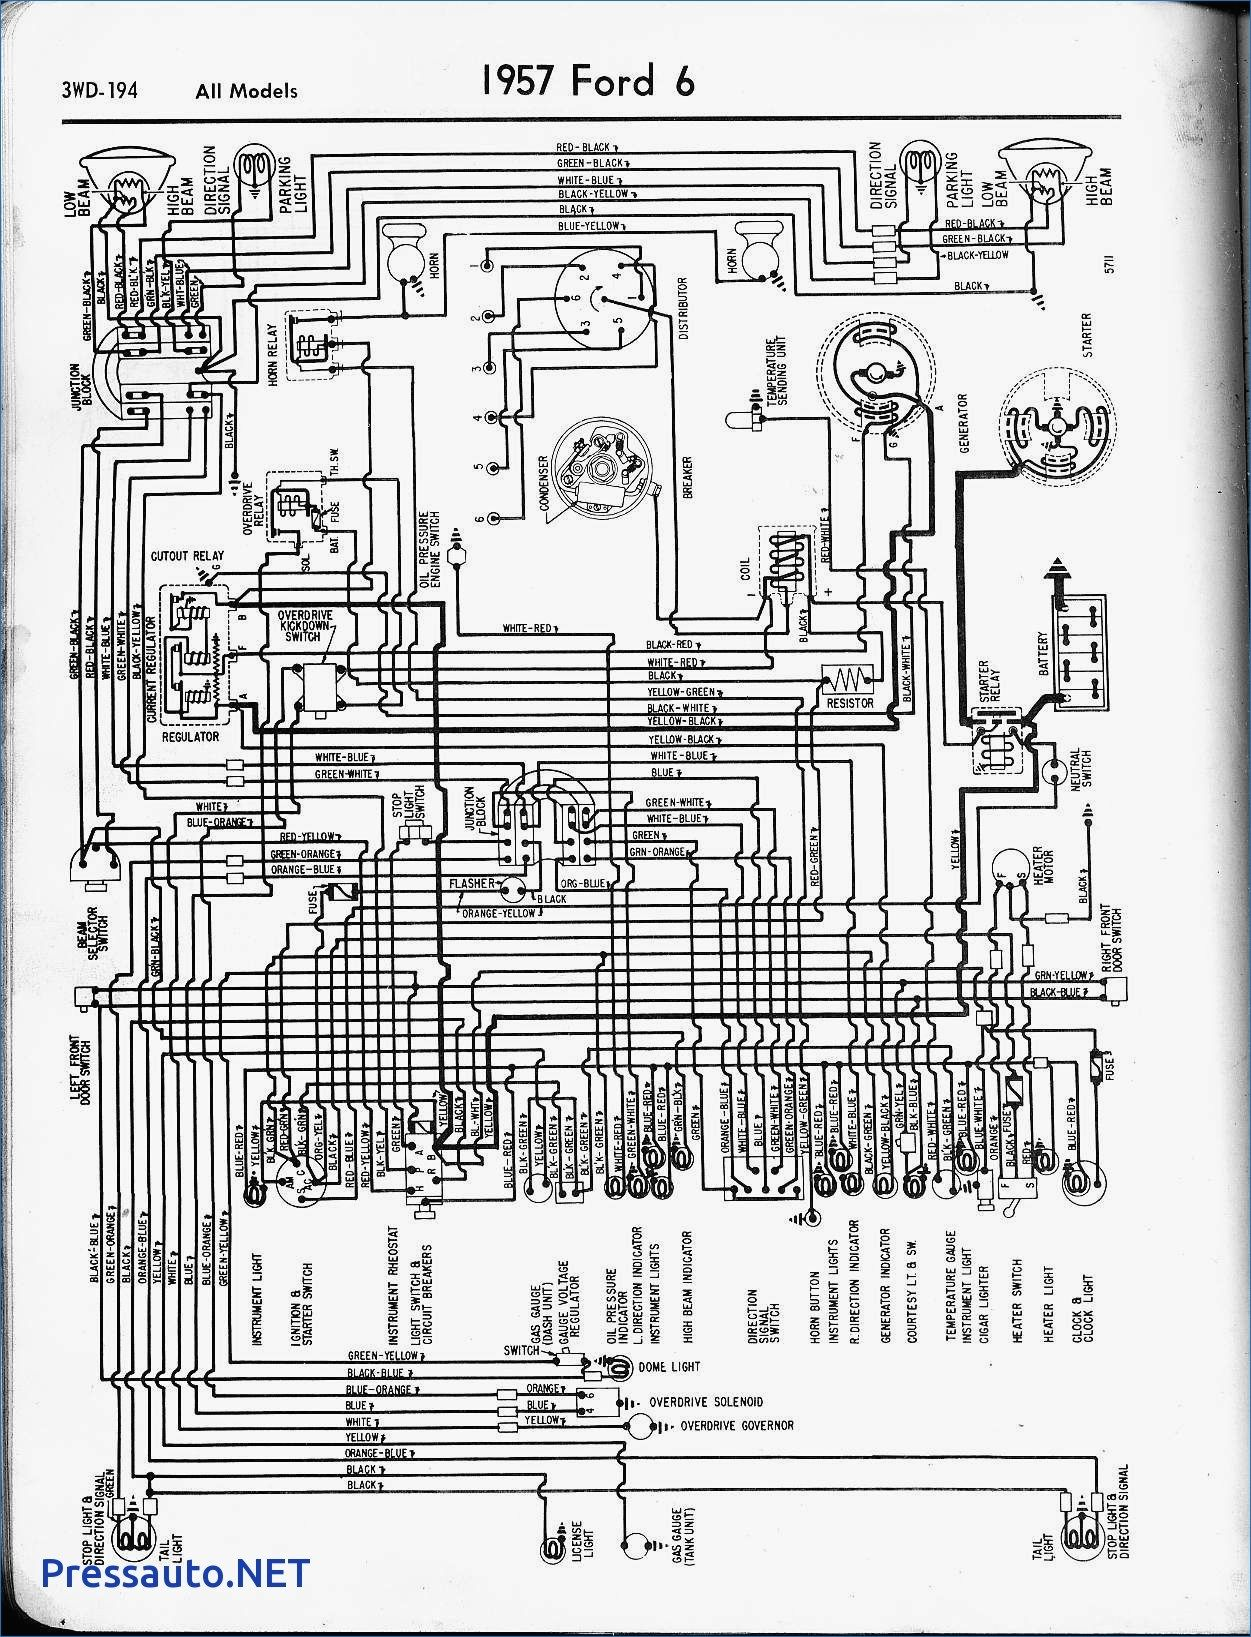 hight resolution of peugeot 307 power steering wiring diagram pressauto net in on rh pinterest com wiring diagram peugeot